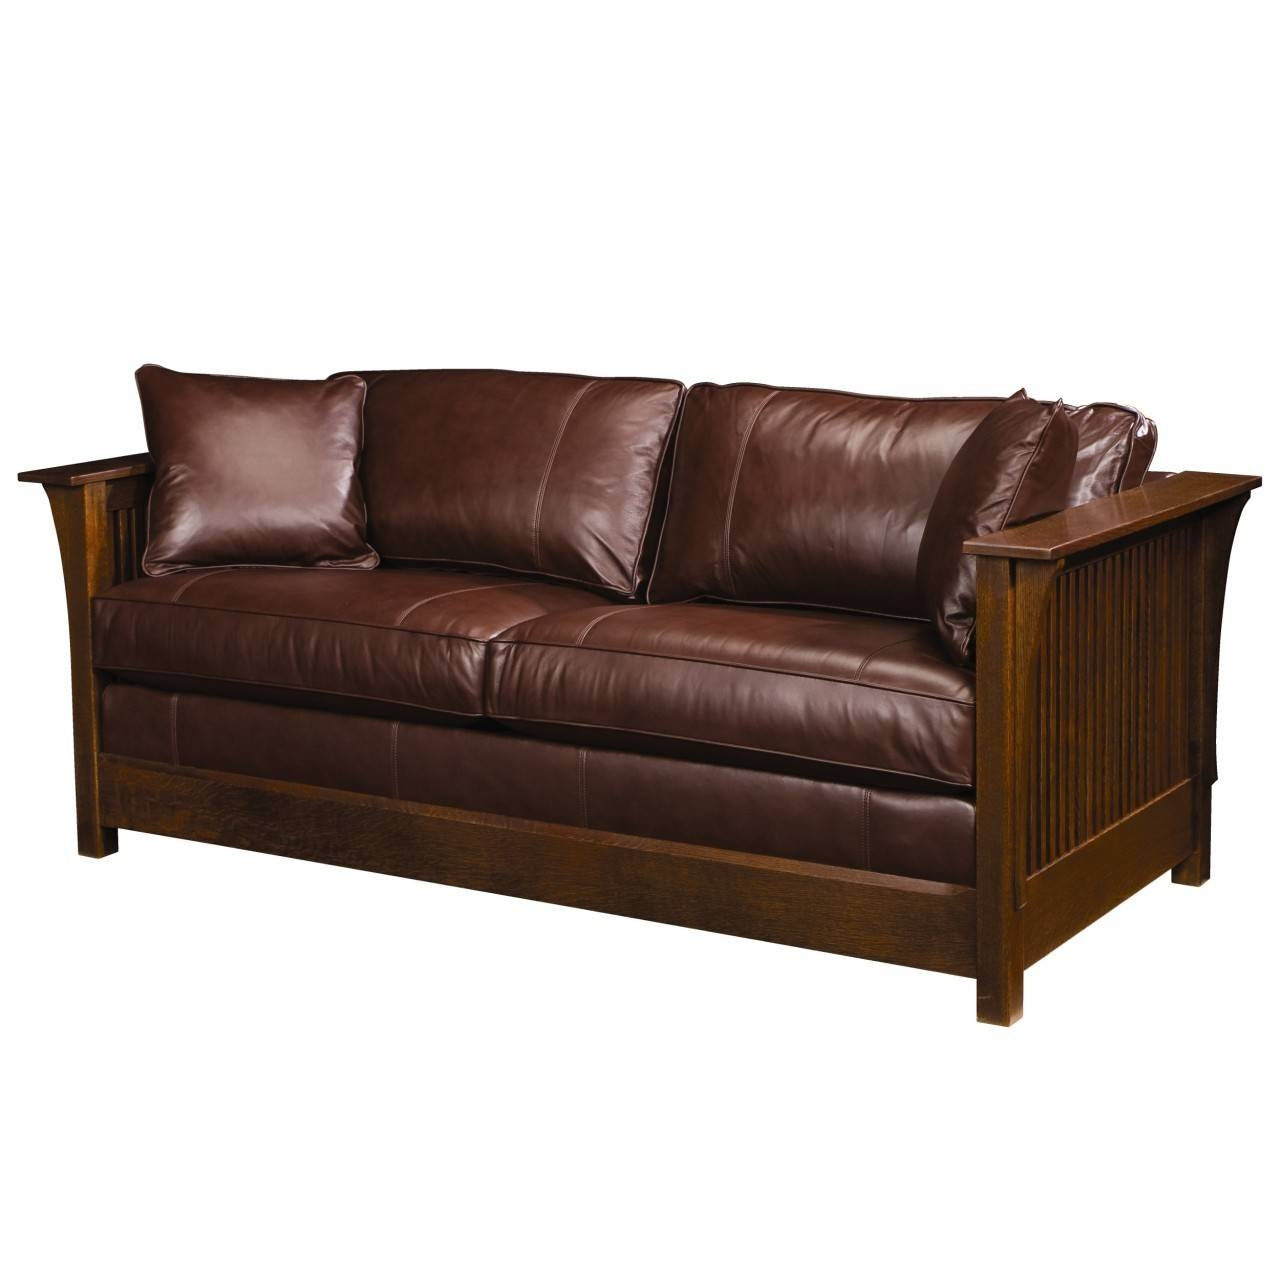 Leather Sofa Sleepers Queen Size - Tourdecarroll in Sofa Sleepers Queen Size (Image 9 of 30)